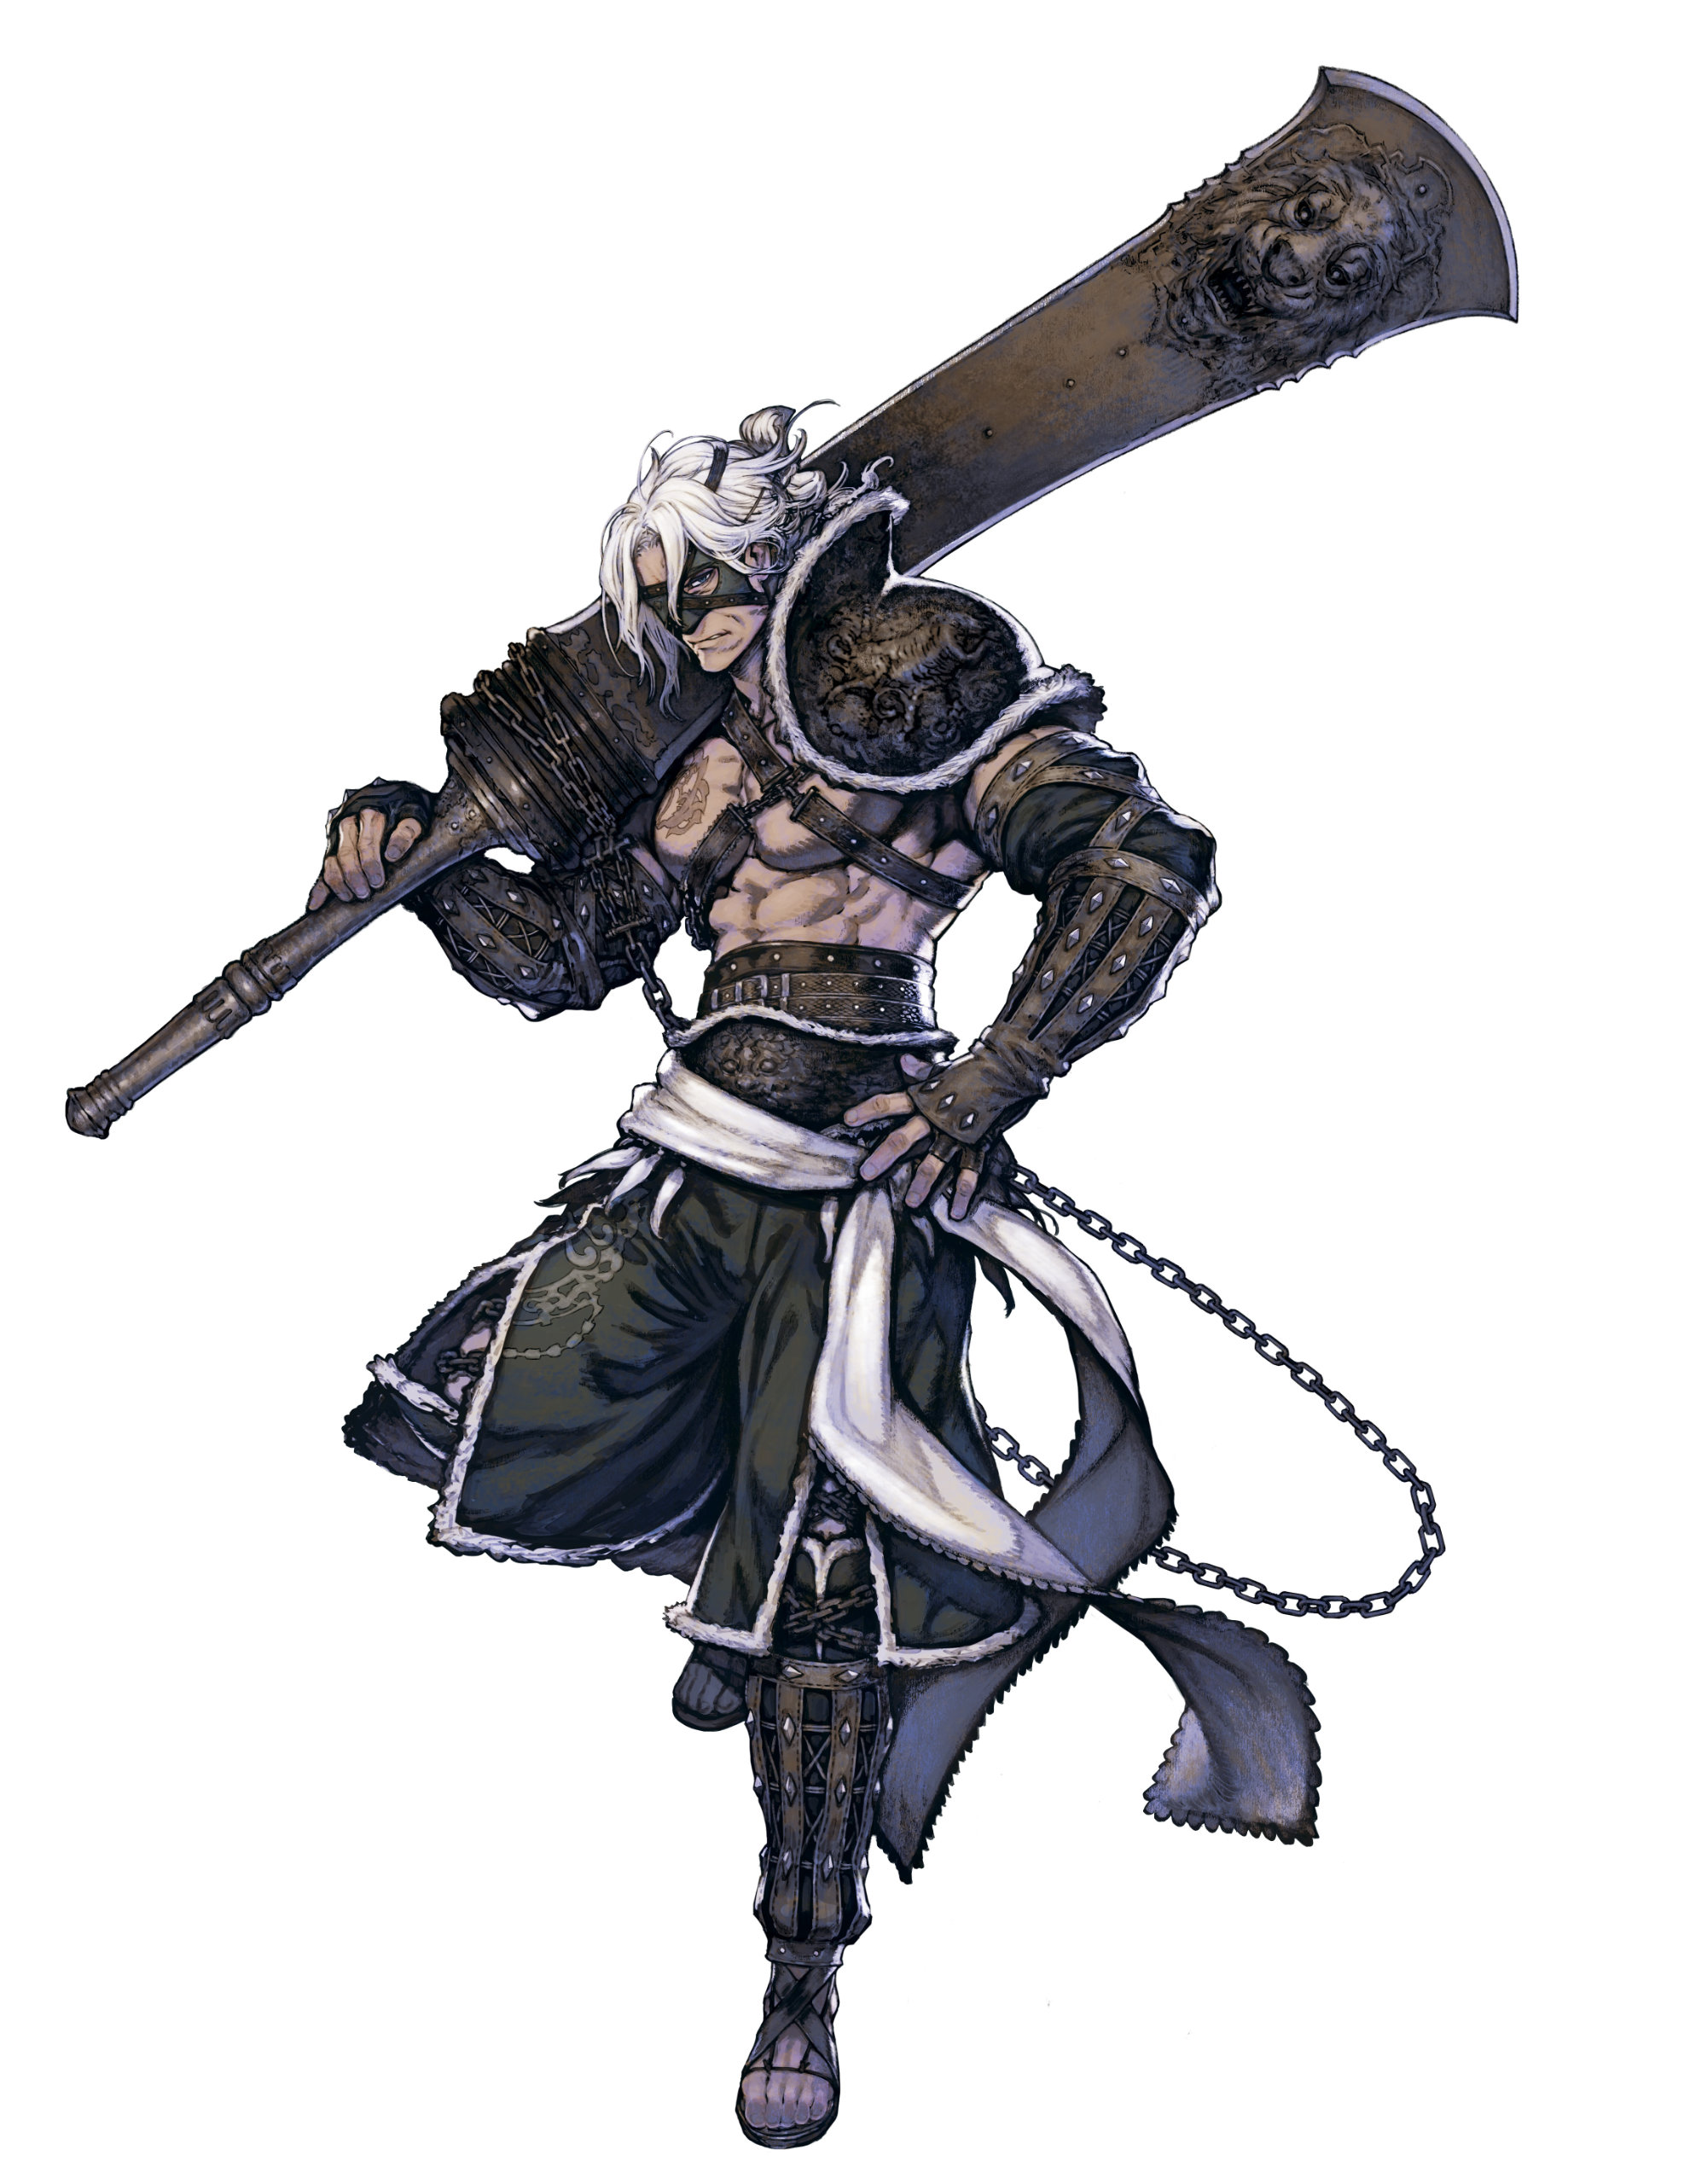 Artwork Of Dad Nier From NieR Replicant Recycled Vessel Content